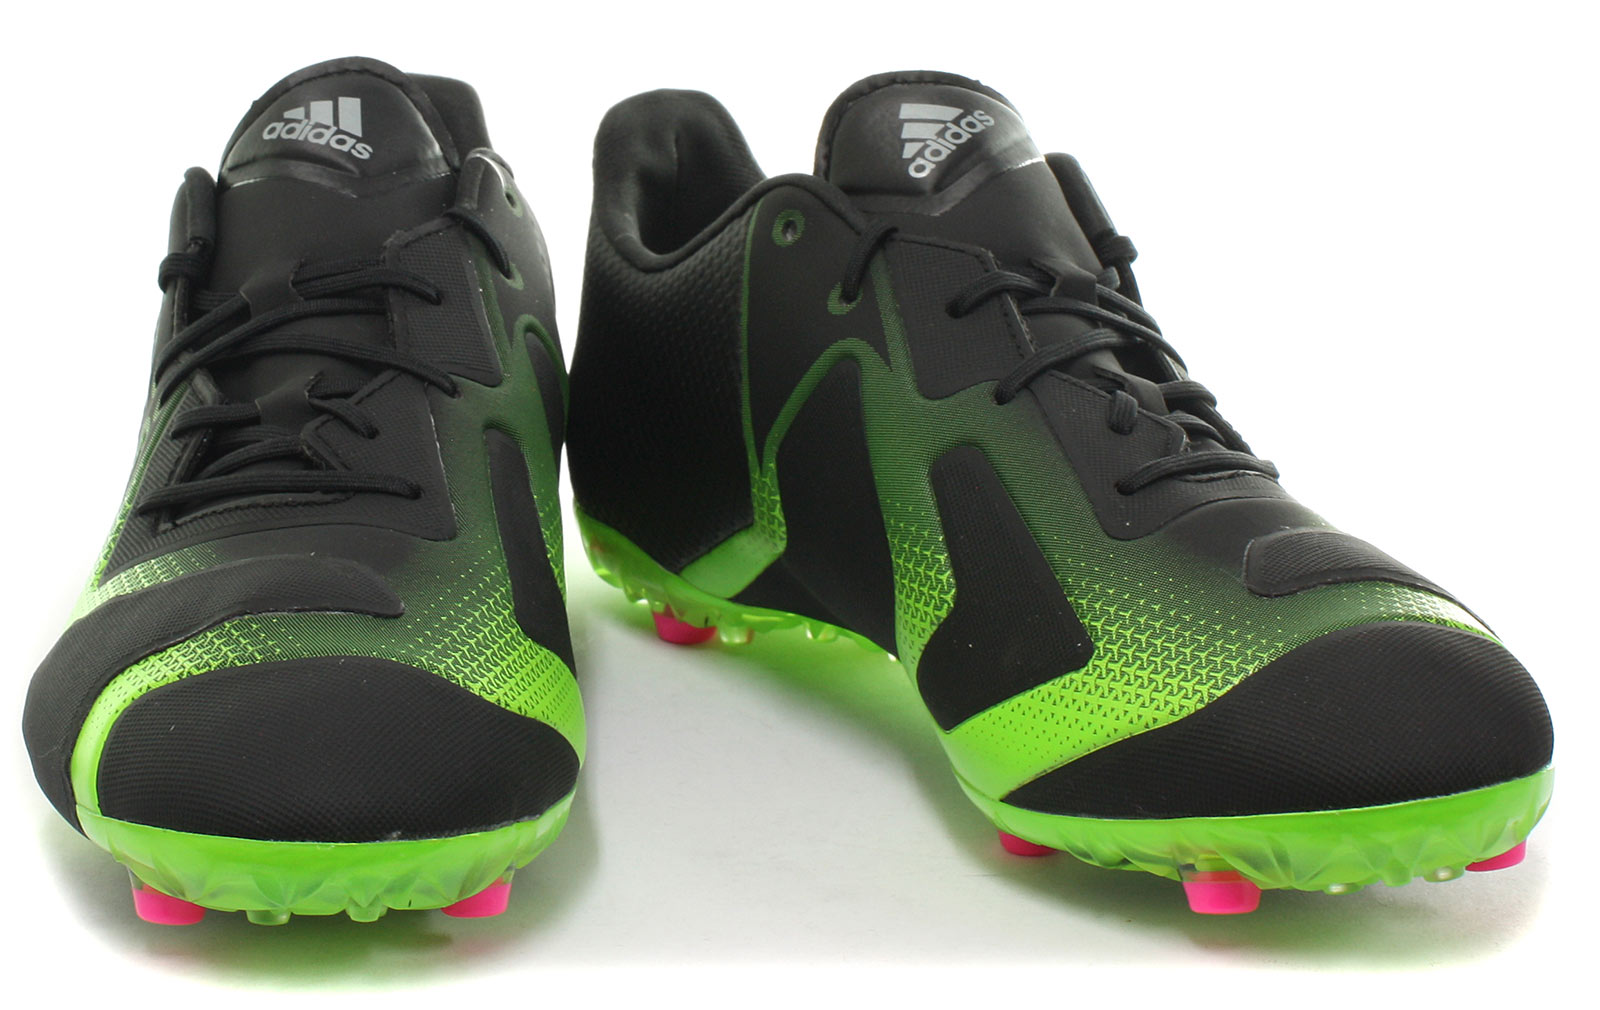 1839cf31dfbc New adidas Ace 16+ TKRZ Mens Artificial Grass Football Boots ALL ...